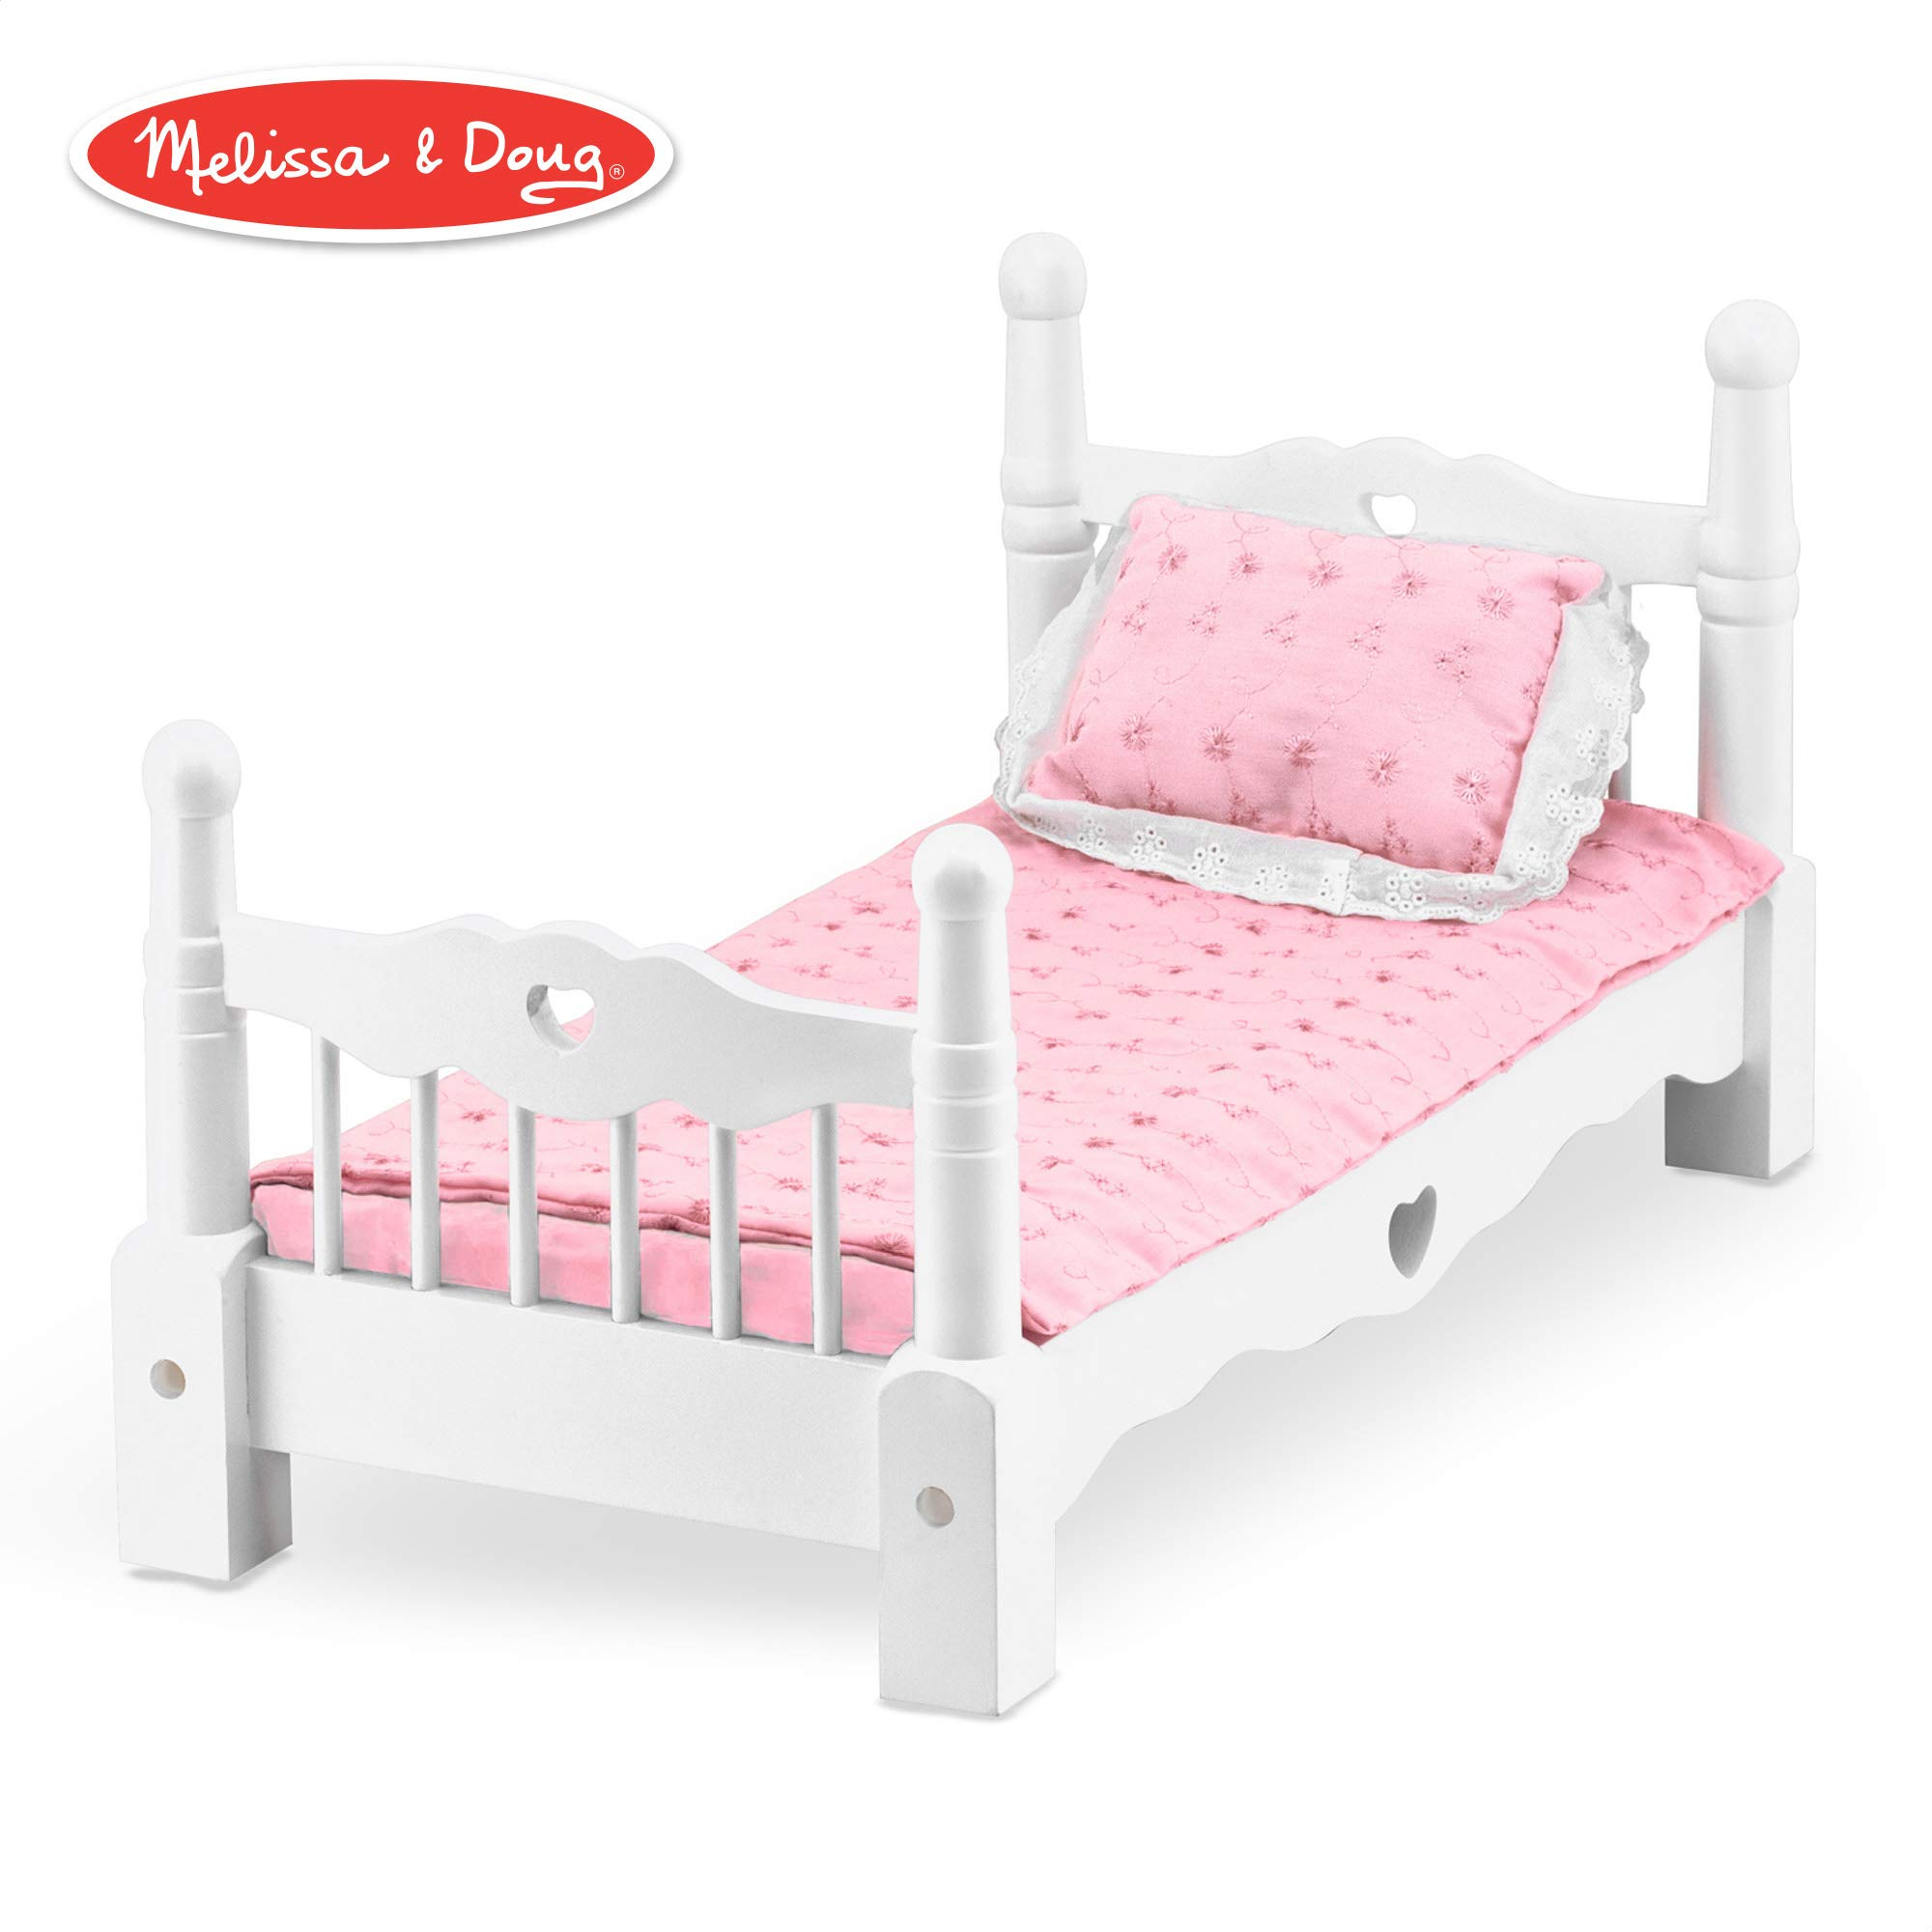 Melissa & Doug White Wooden Doll Bed With Bedding, 24 x 12 x 11-Inches by Melissa & Doug